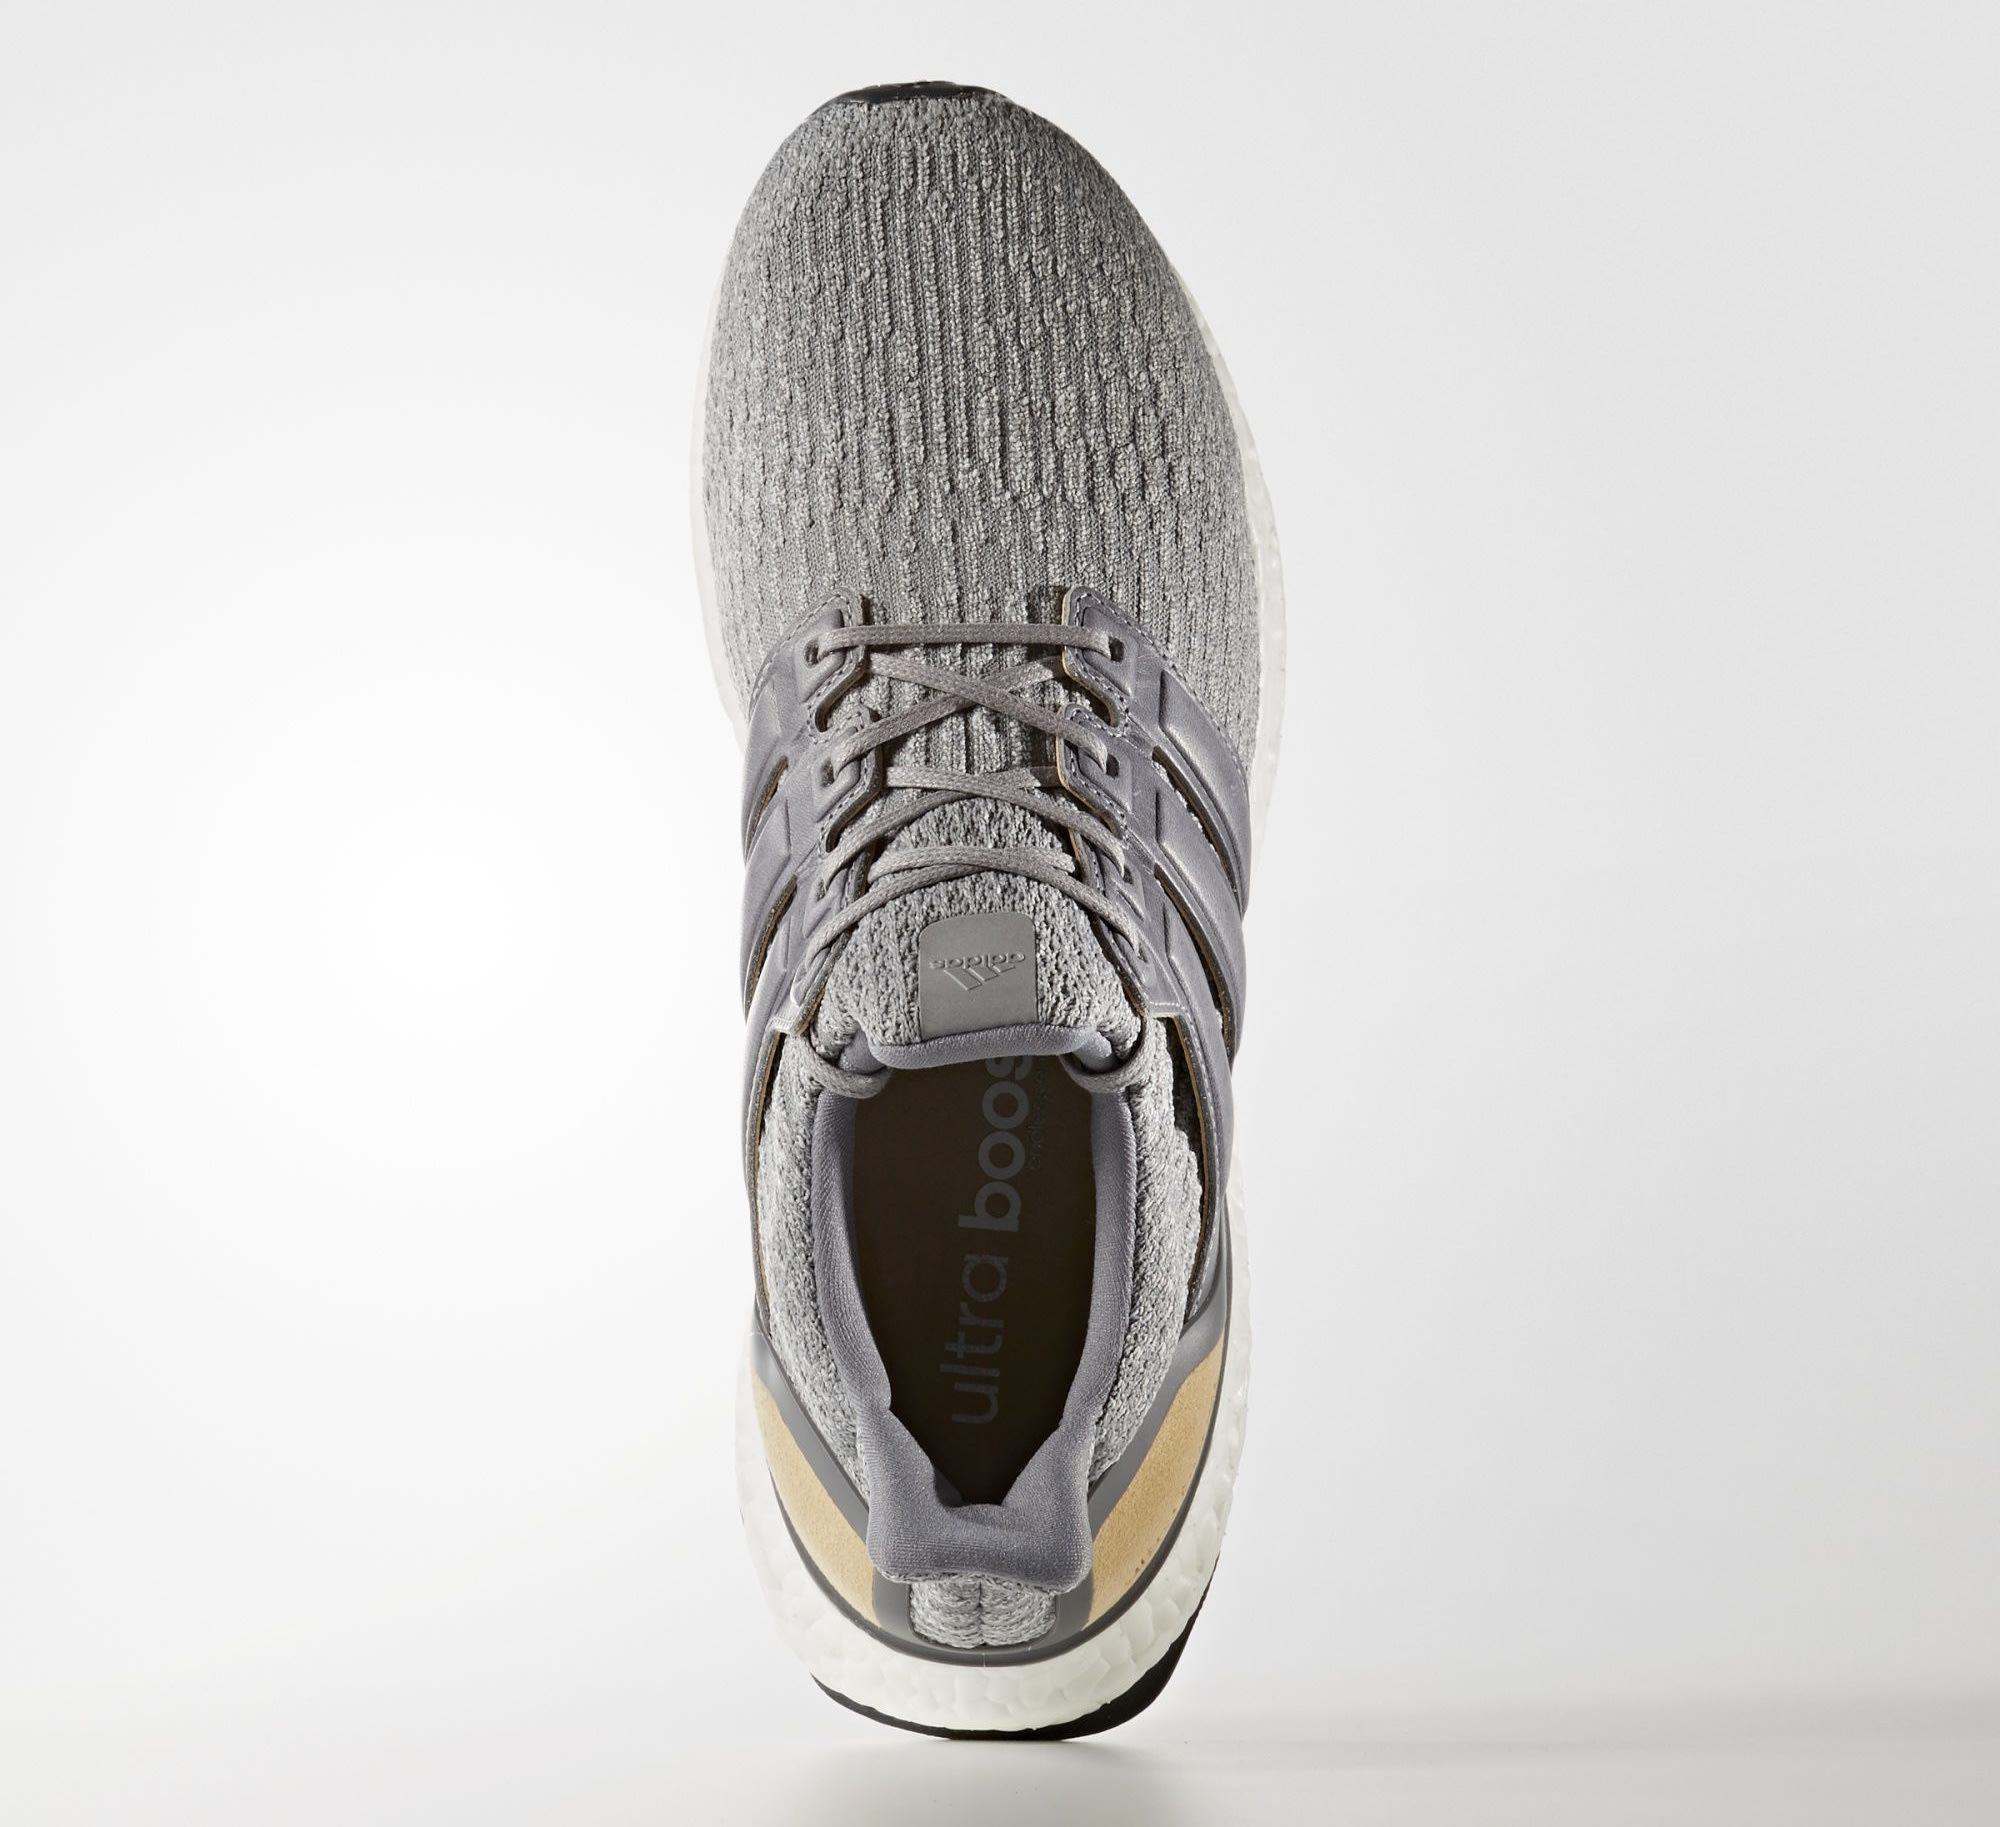 bbb77e275 Image via Adidas Adidas Ultra Boost 3 Grey Leather Suede BB1092 Top